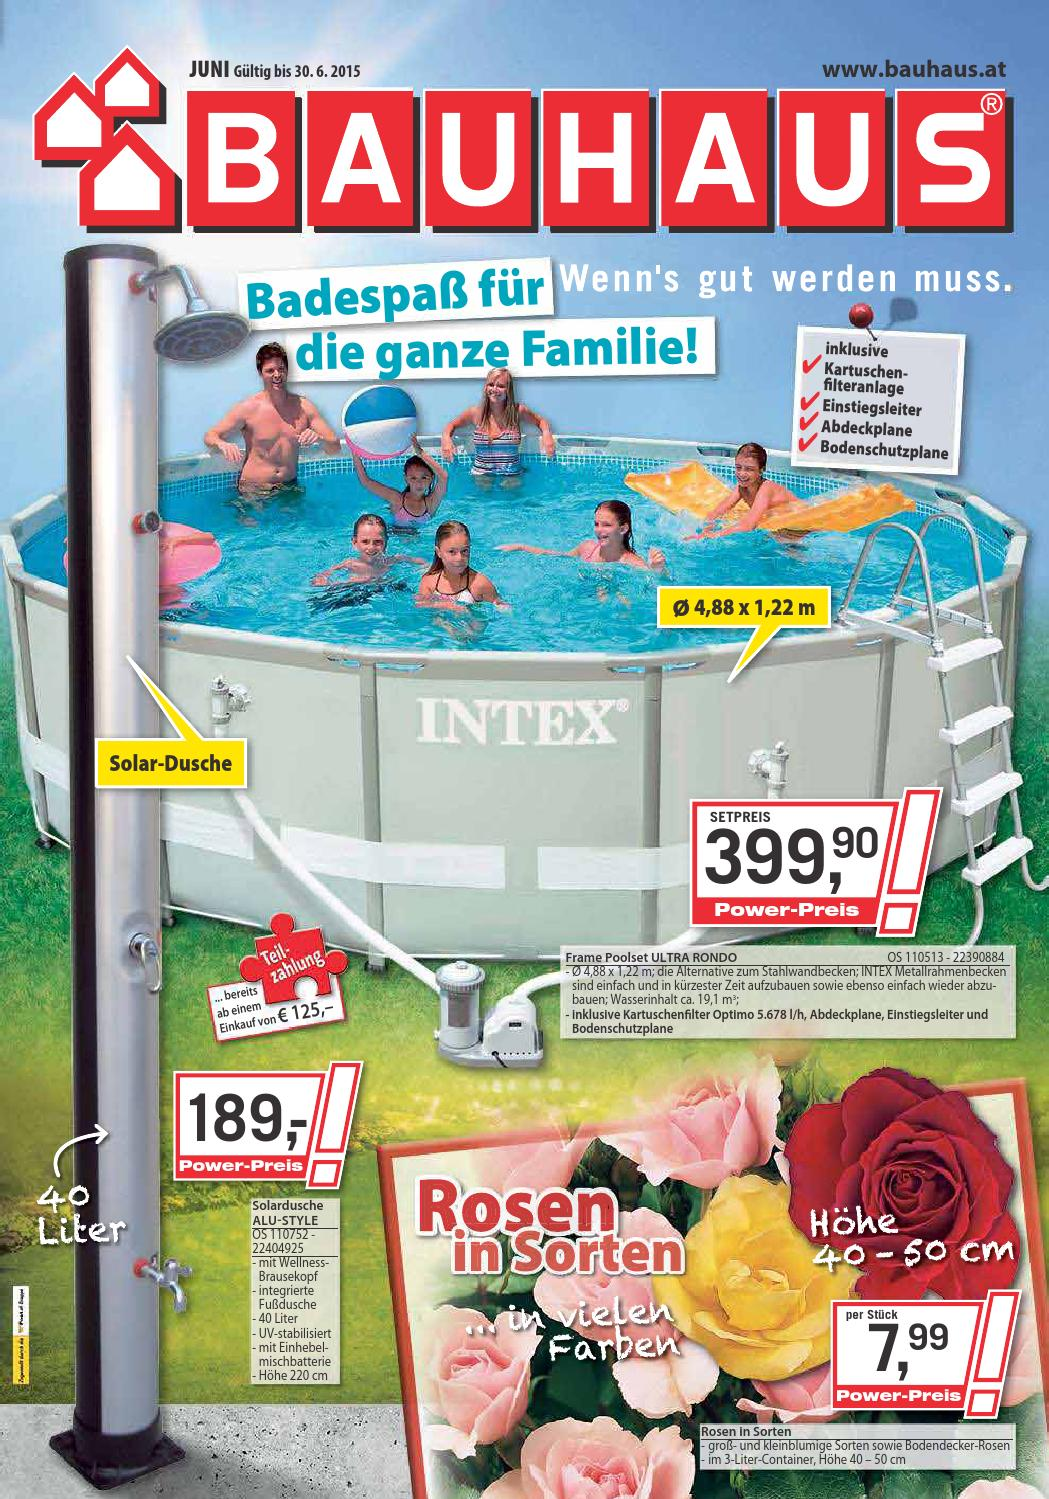 Intex Pool Abdeckplane Eckig Bauhaus Angebote 1 30juni2015 By Promoangebote At Issuu